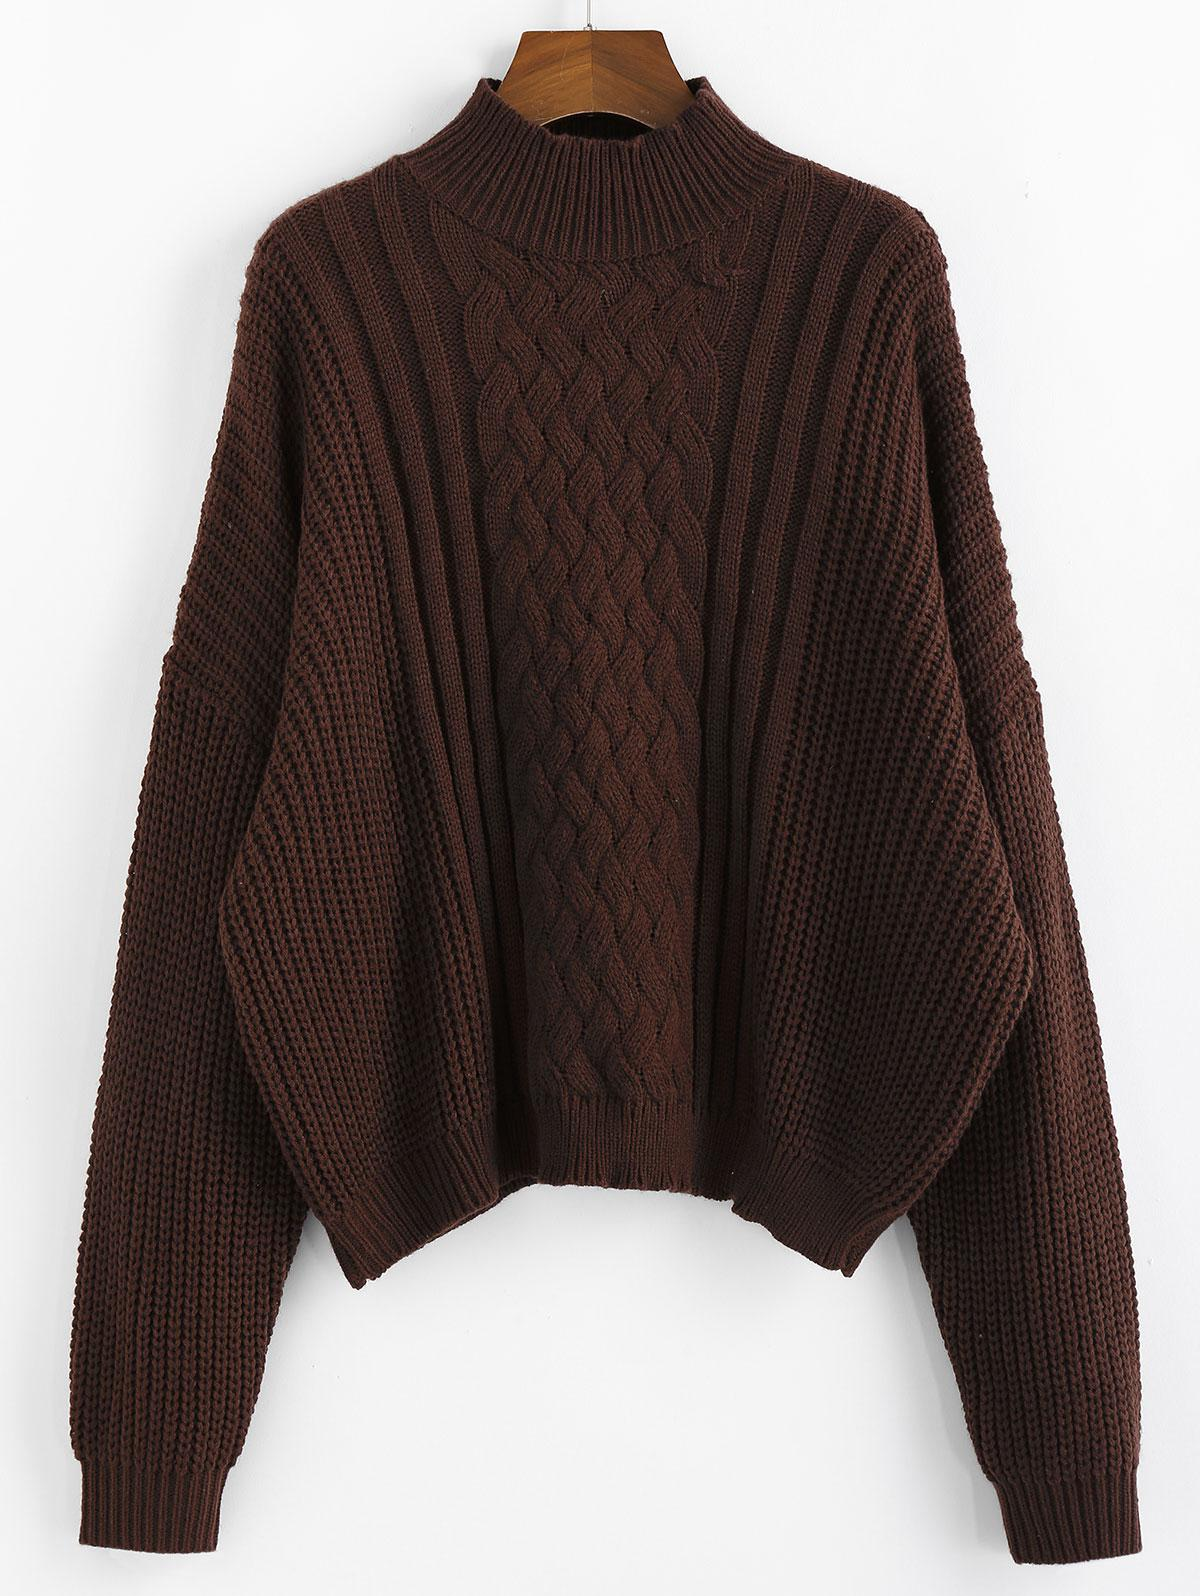 ZAFUL Mock Neck Cable Knit Sweater